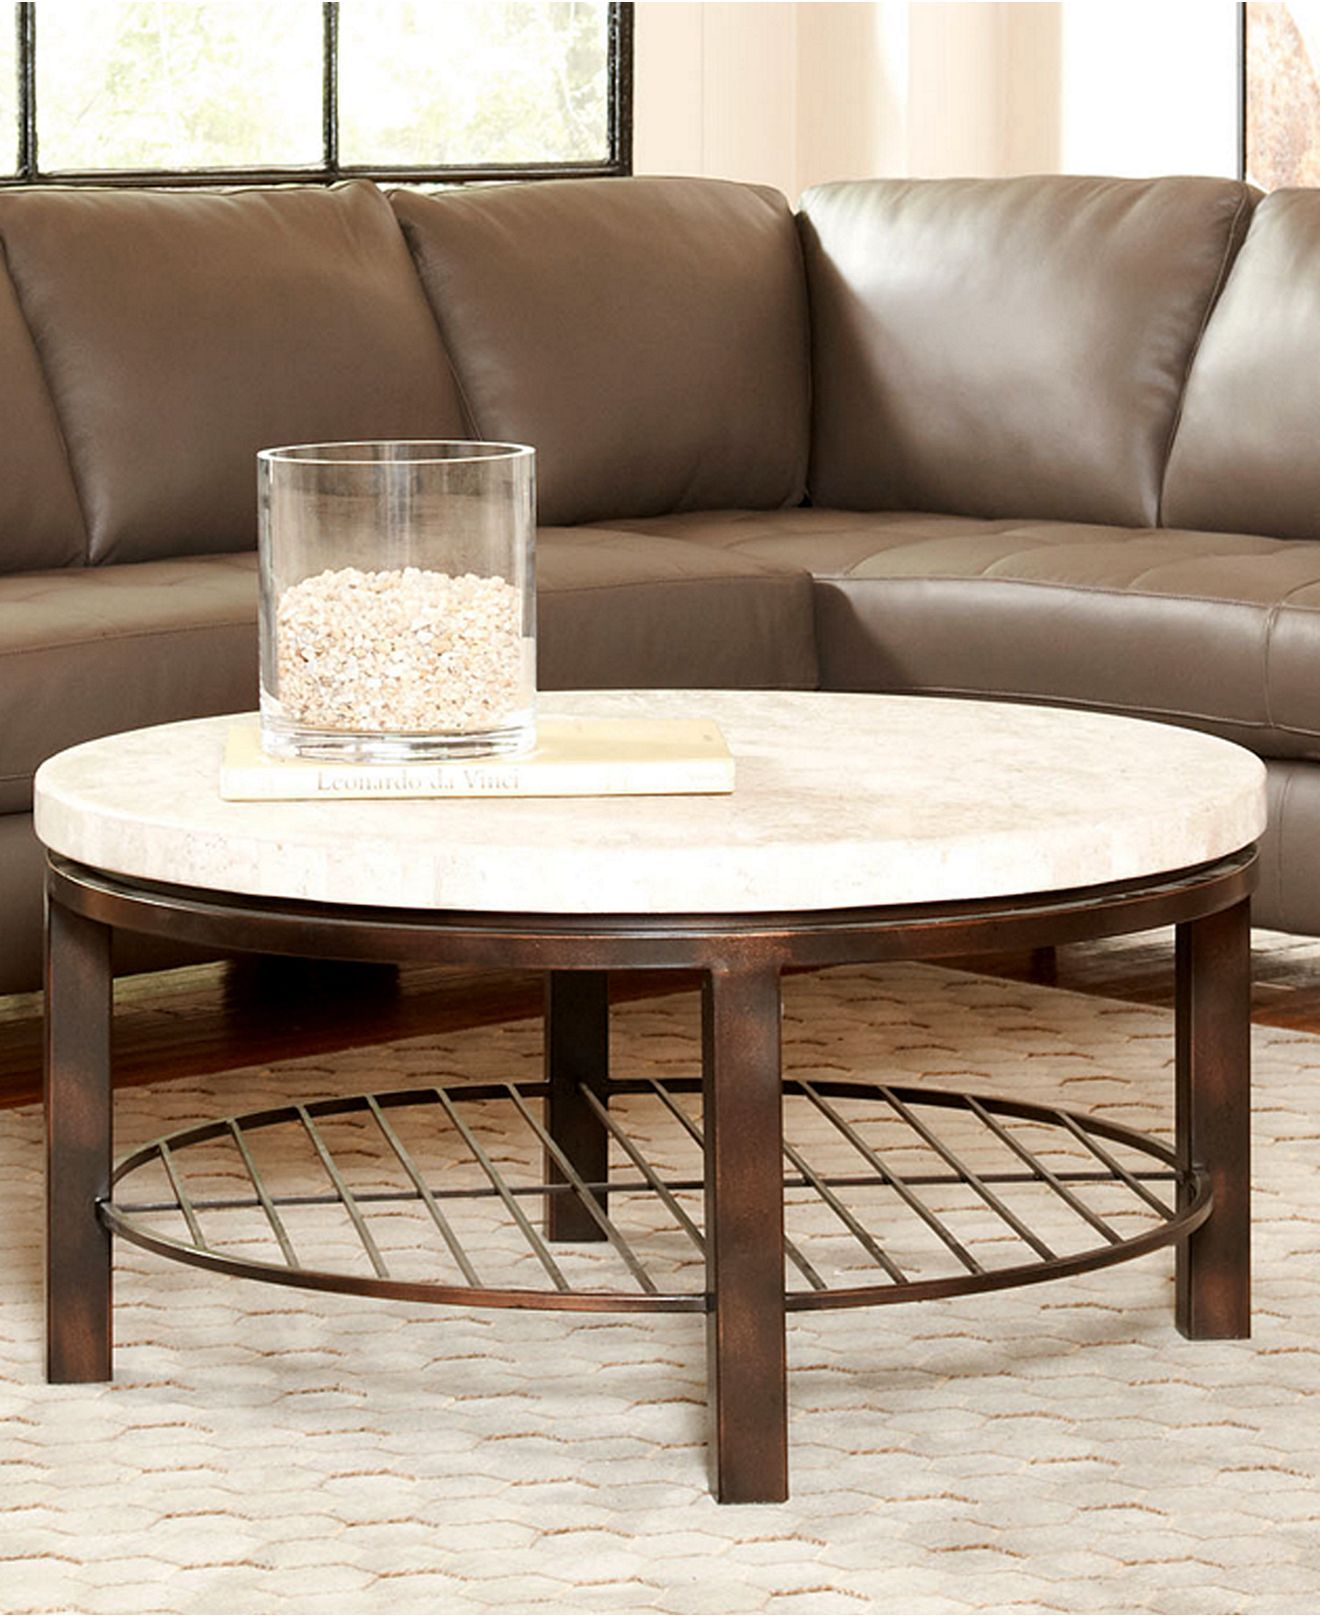 Tempo Travertine Table Collection Round Travertine Coffee Table